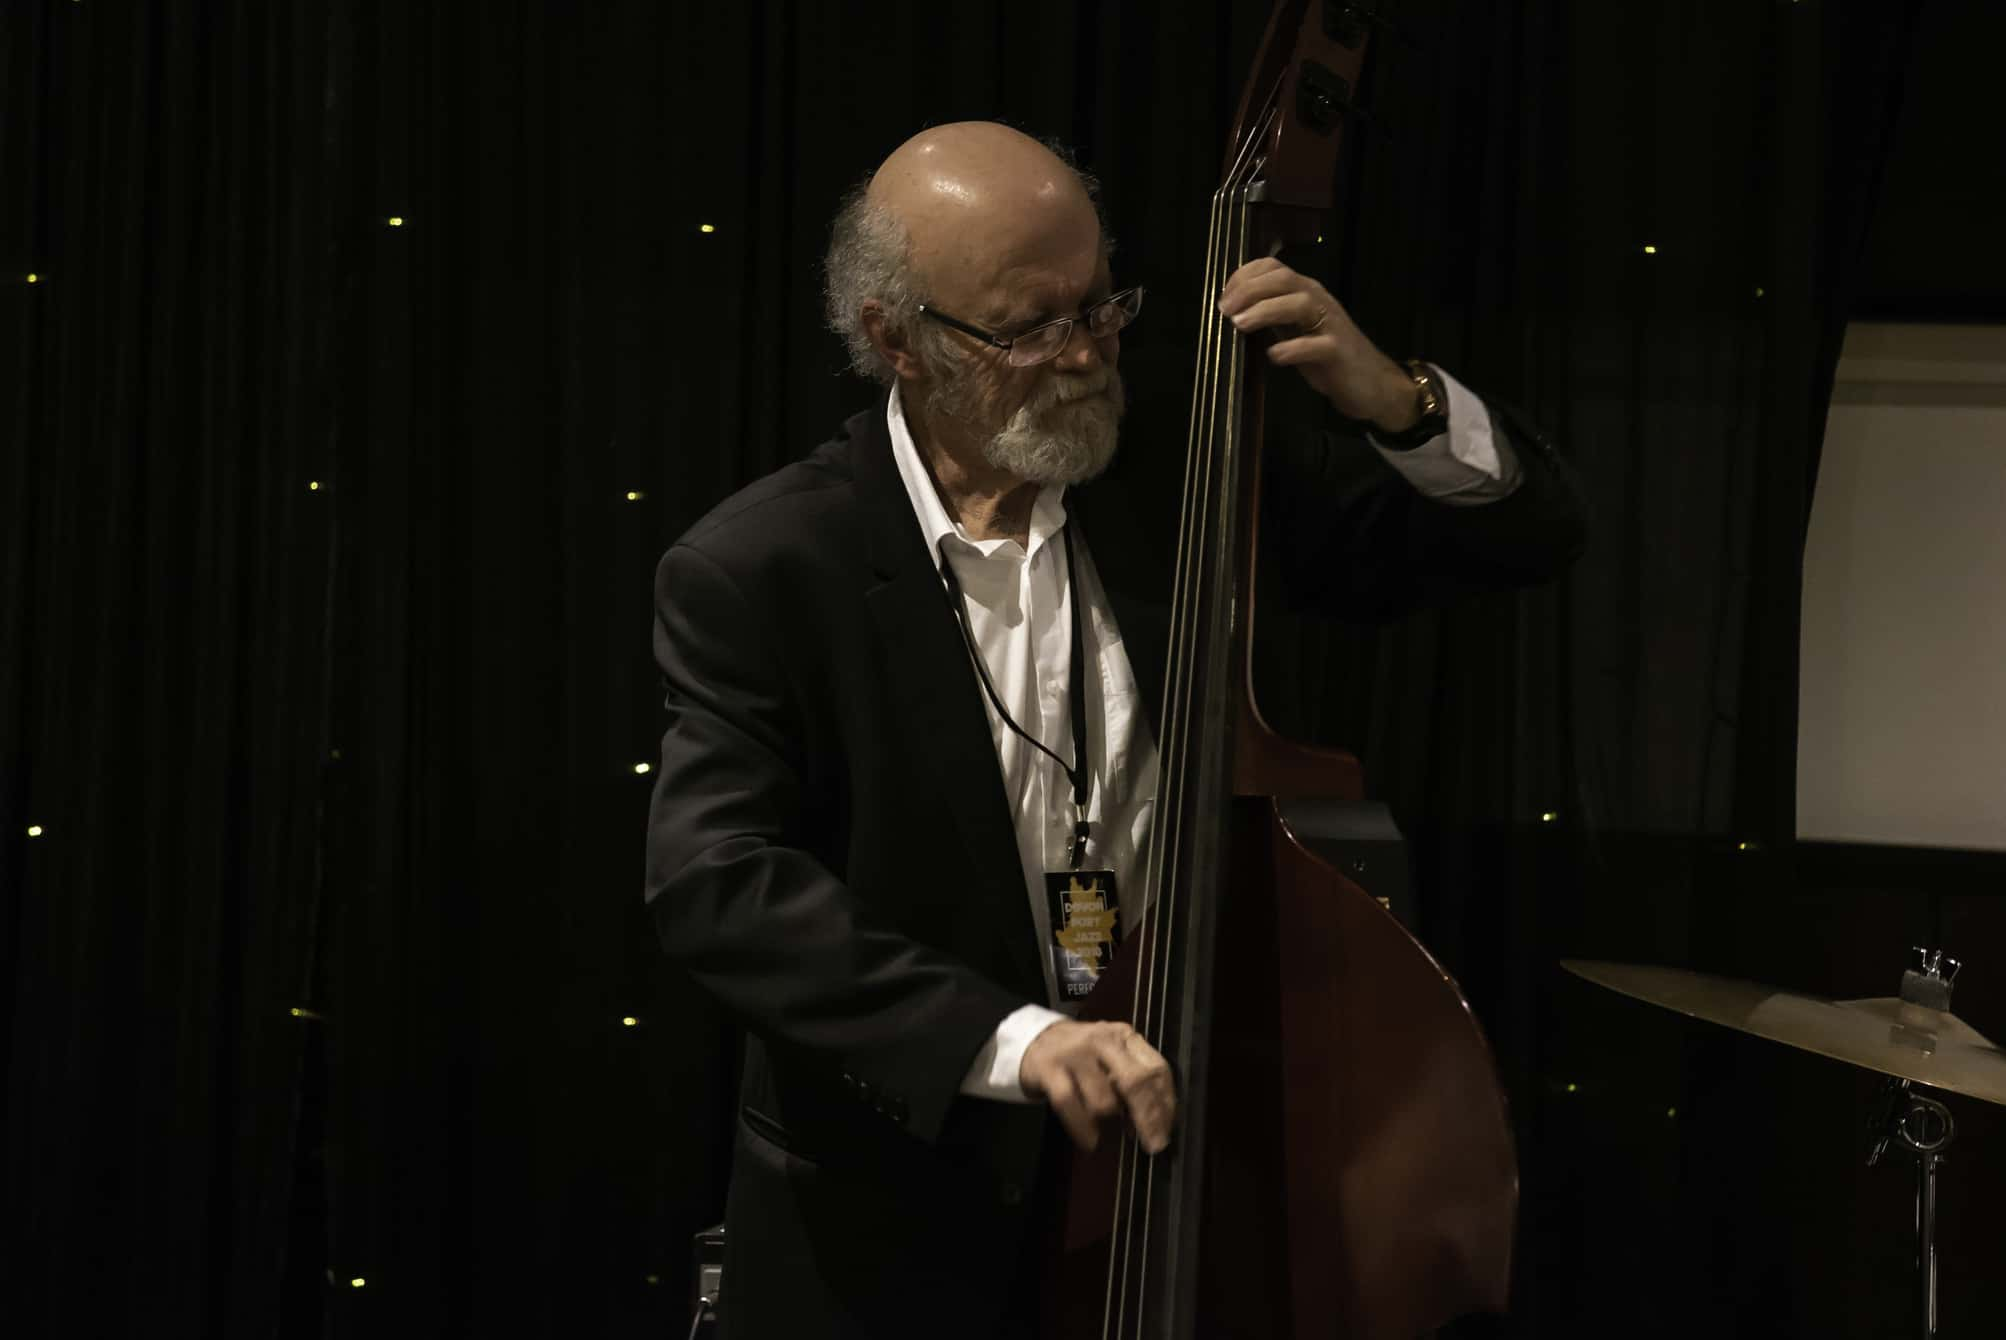 Craig Scott playing the double bass